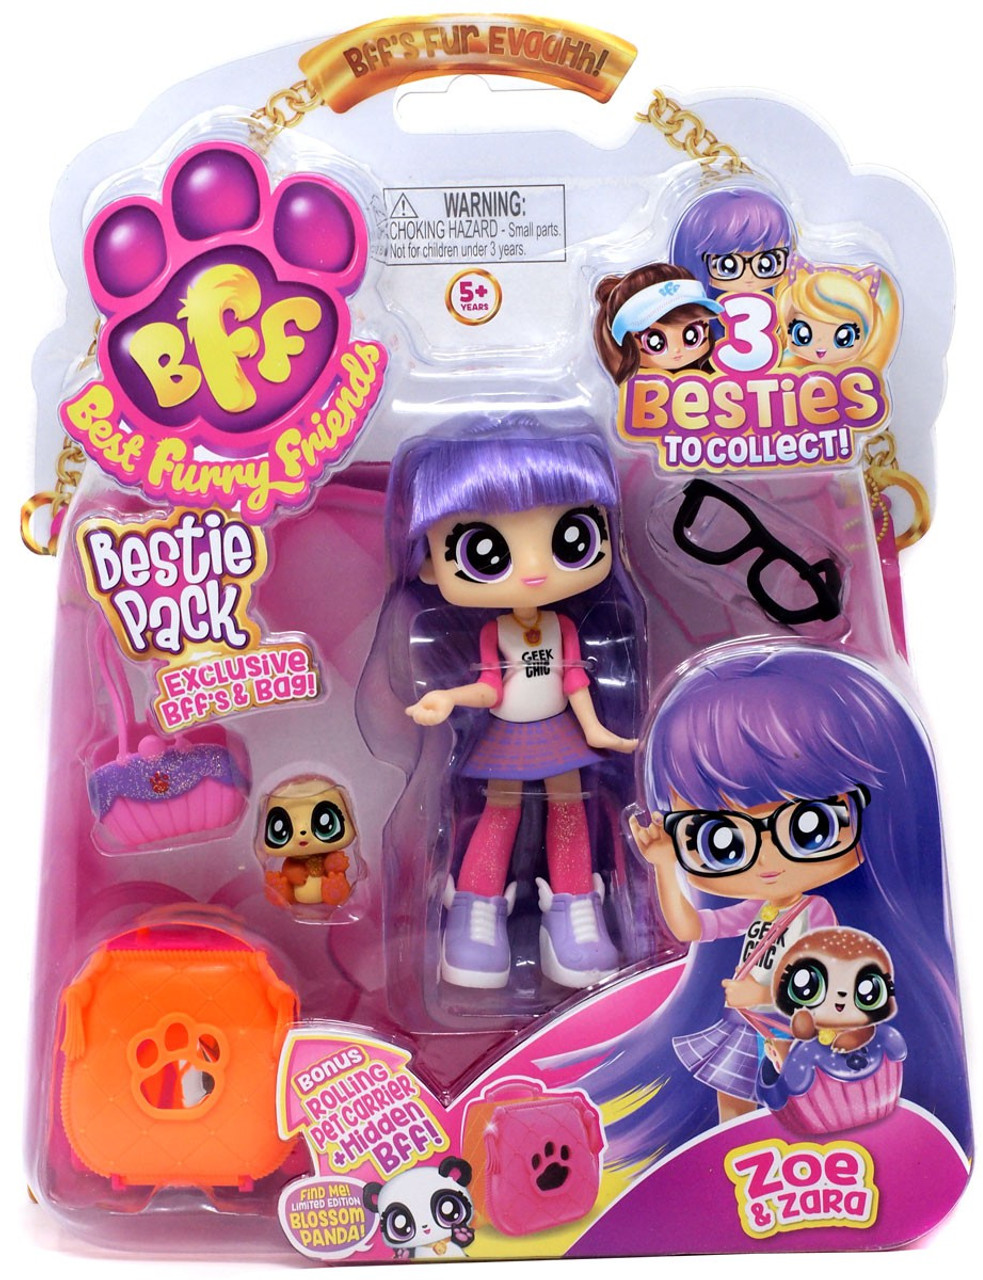 6 BFFs BFF Deluxe Pack 1 of them is a mystery BFF Best Furry Friends